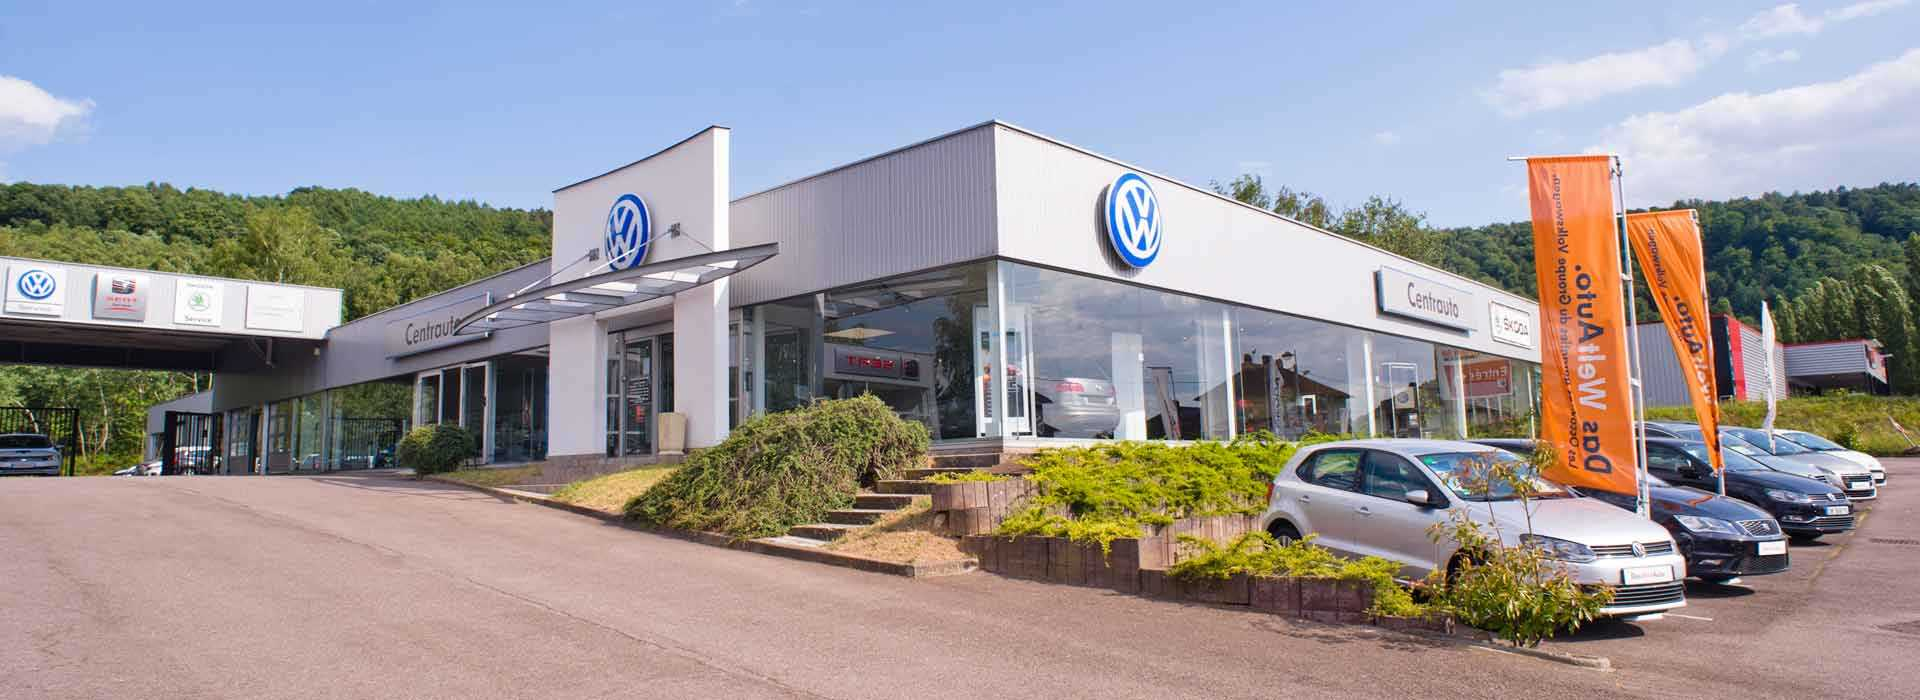 Volkswagen forbach concessionnaire garage moselle 57 for Garage peugeot forbach